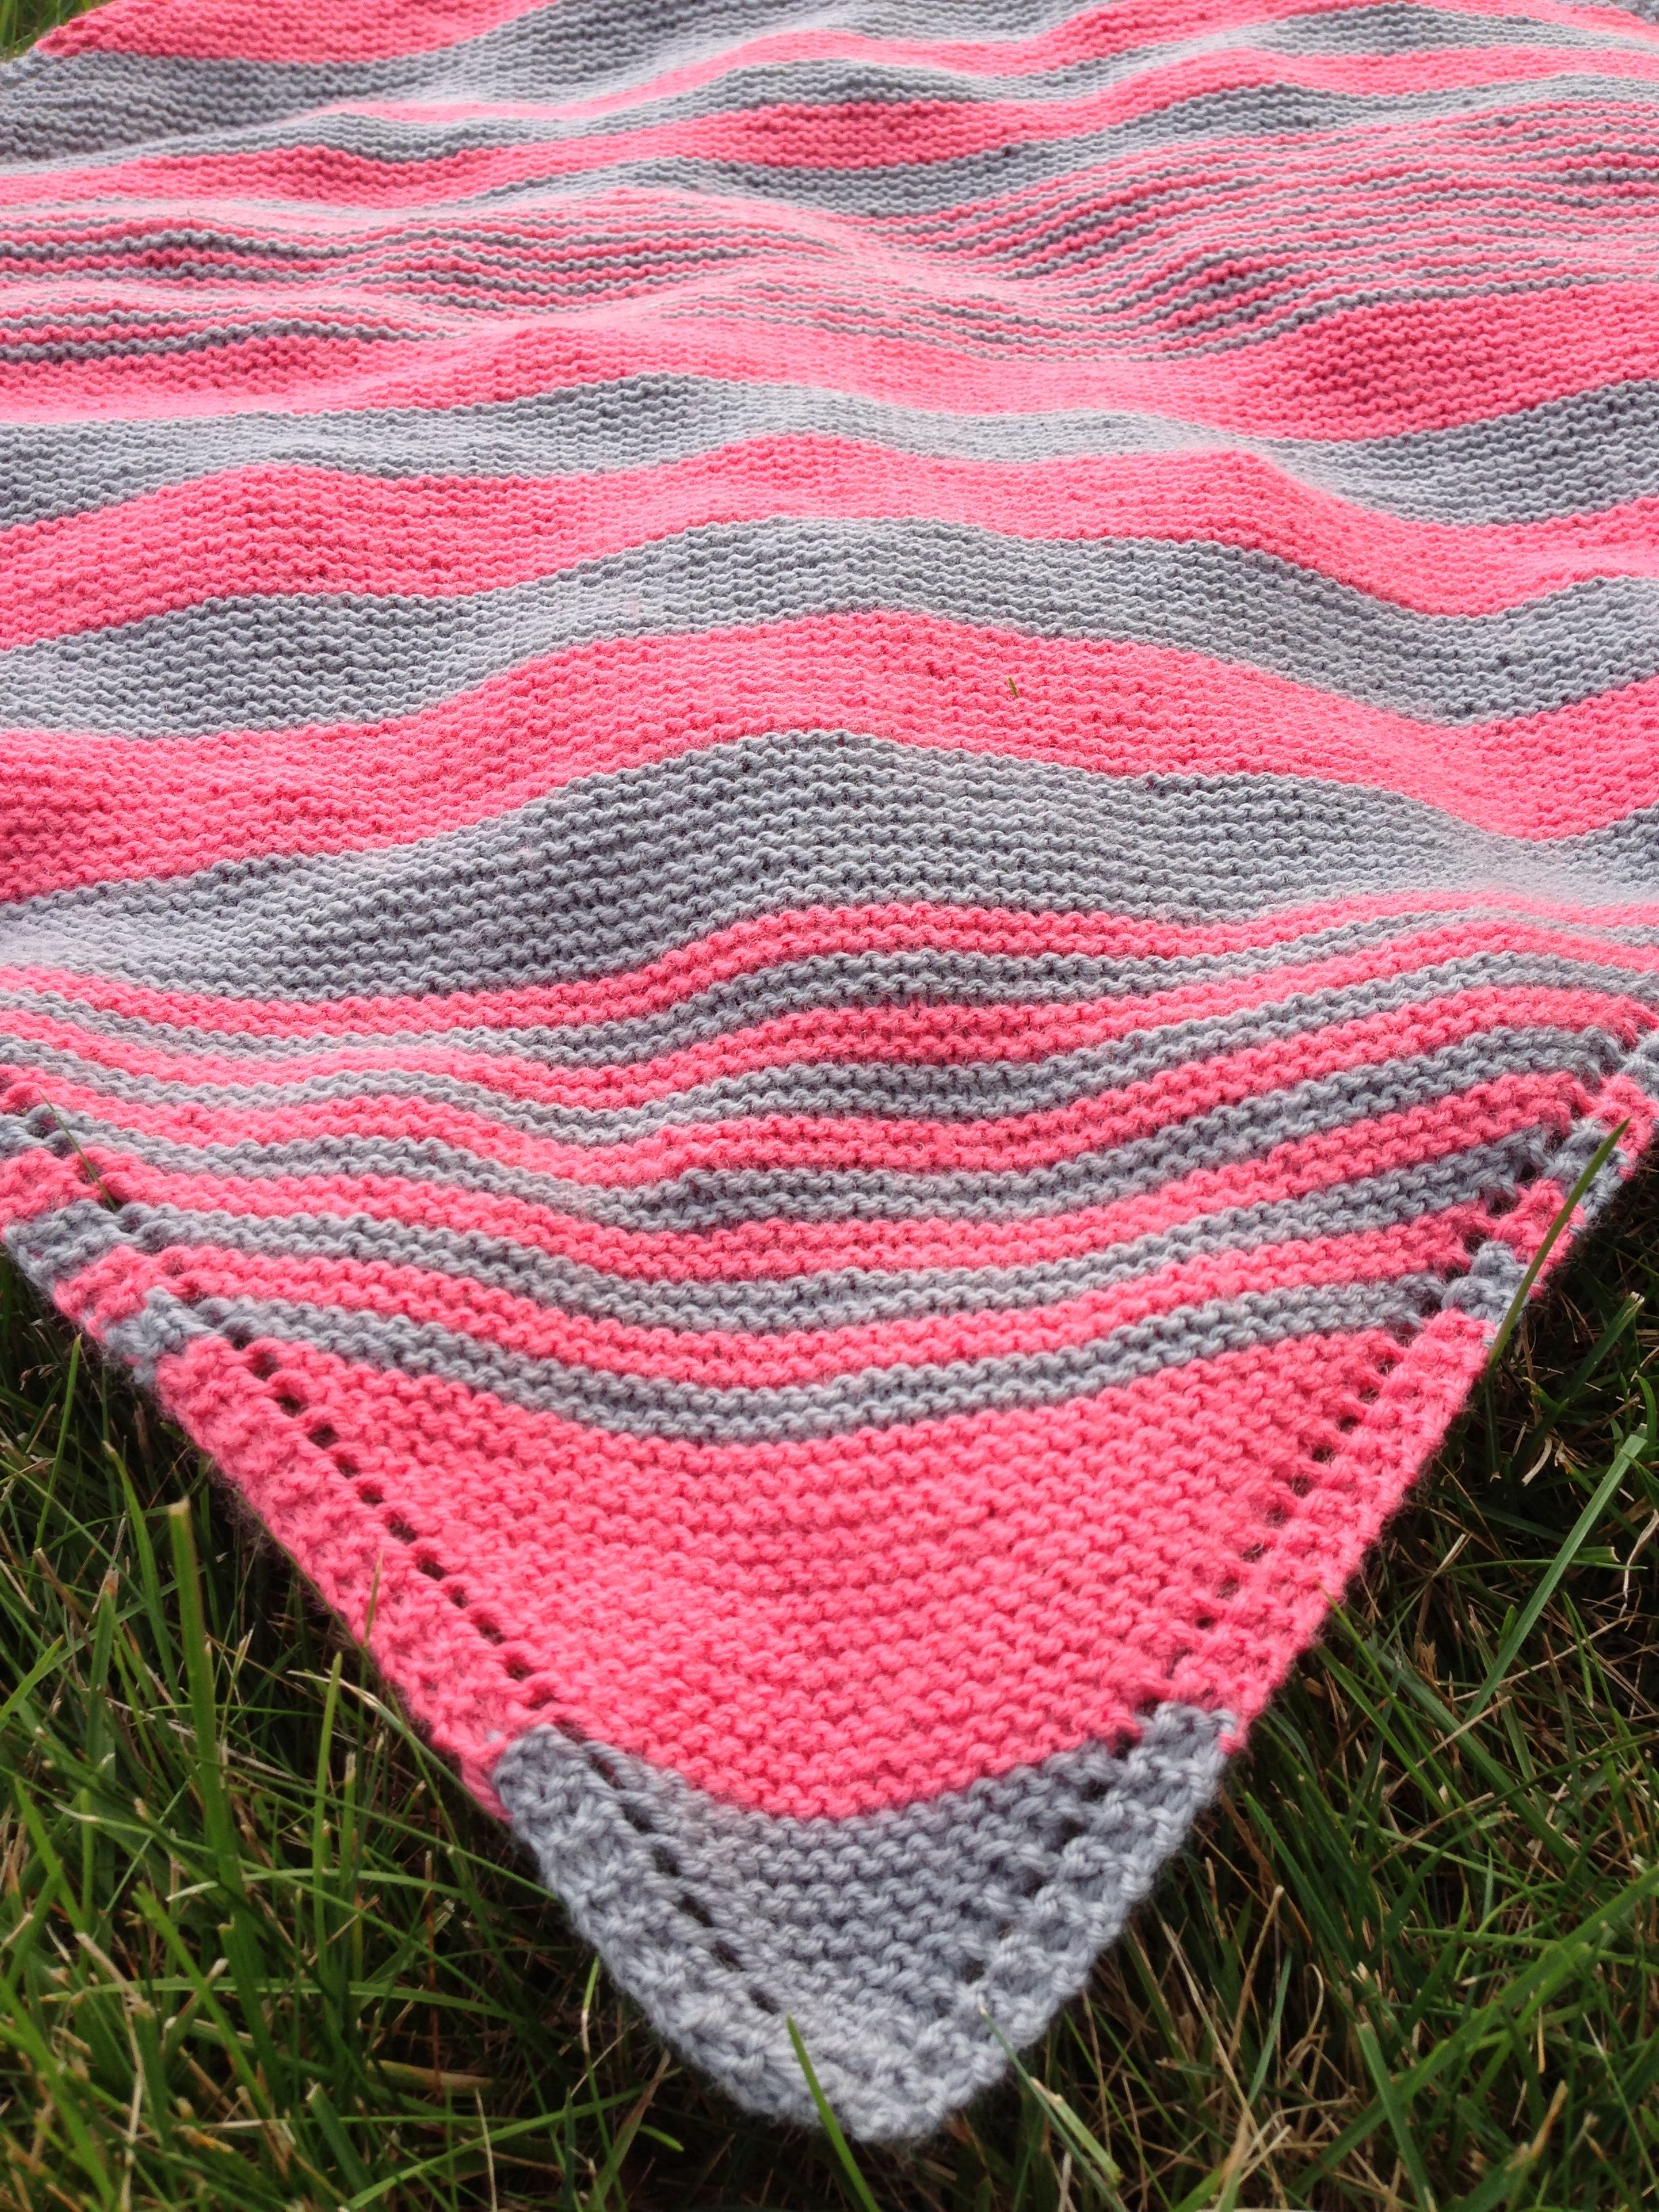 Knitting Blankets : Striped baby blanket knitting knit blankets pinterest